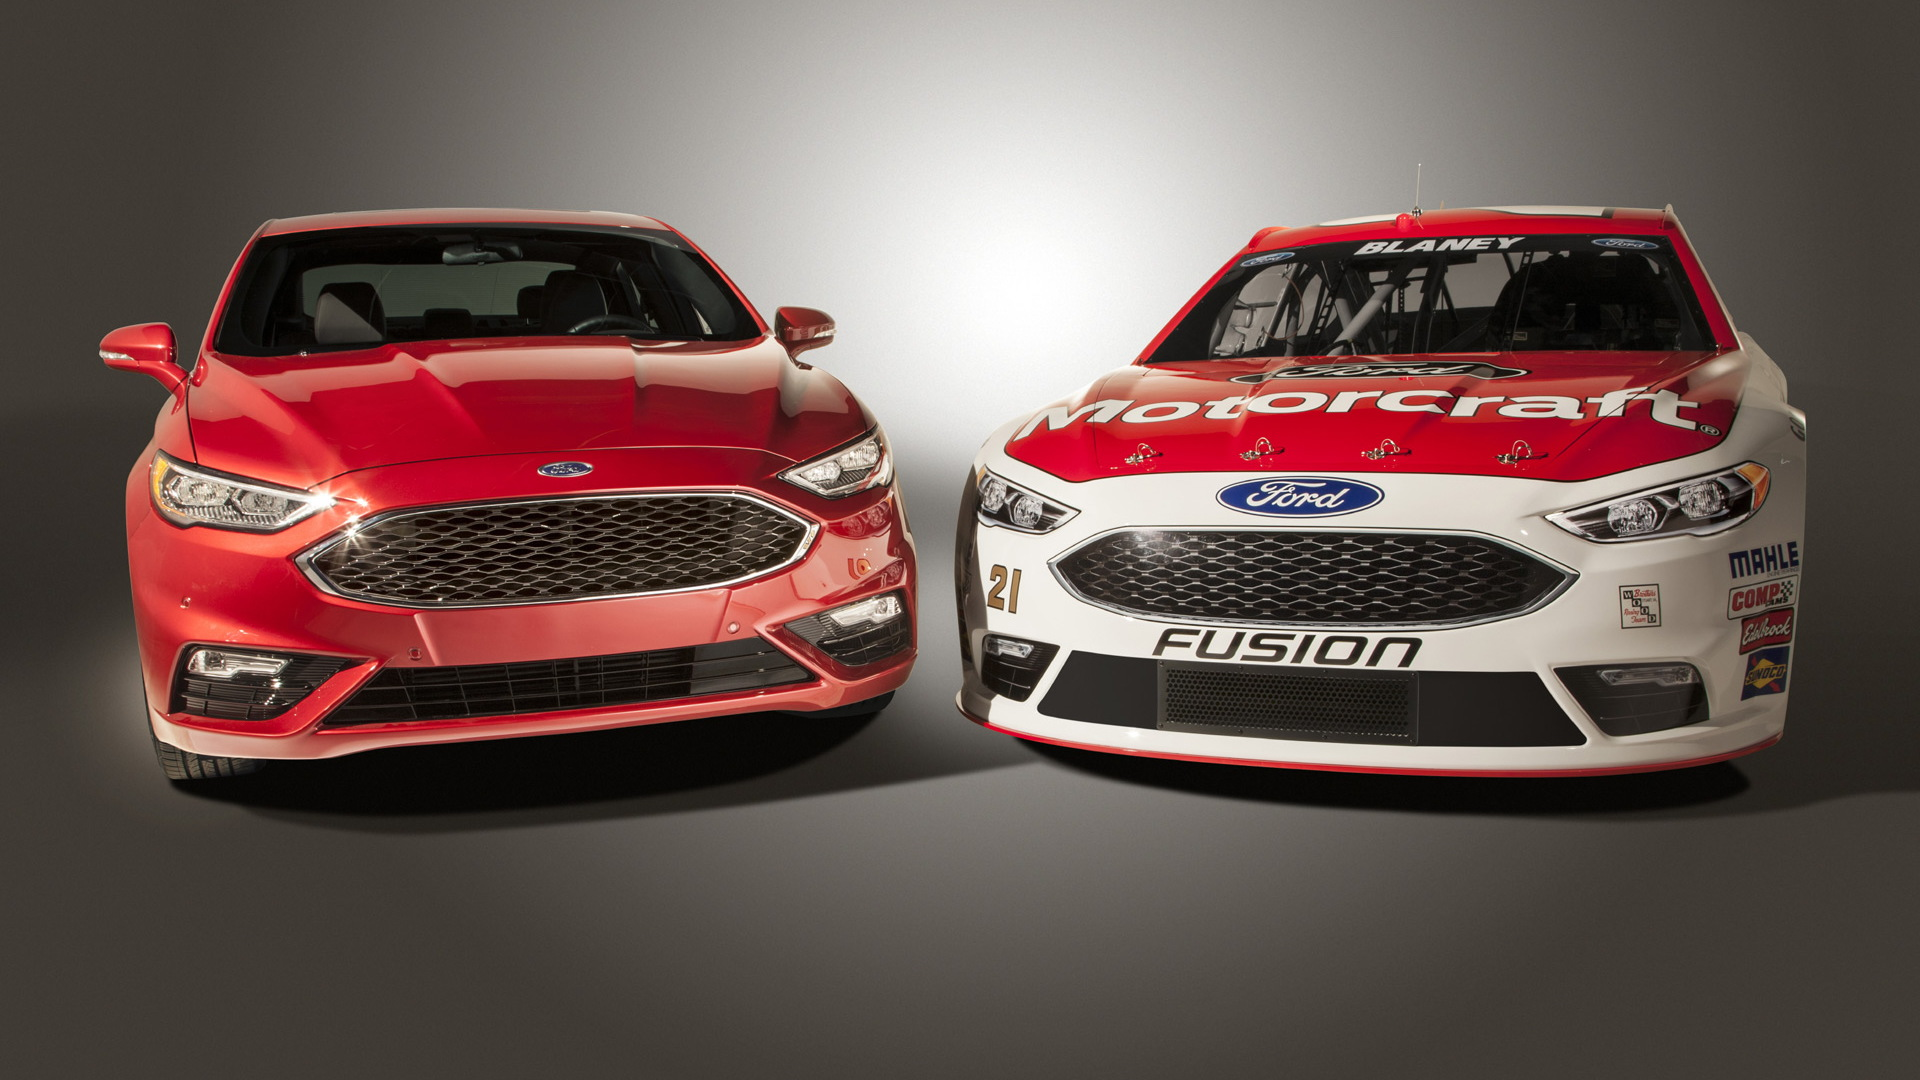 2017 Ford Fusion and 2016 Fusion NASCAR Sprint Cup race car